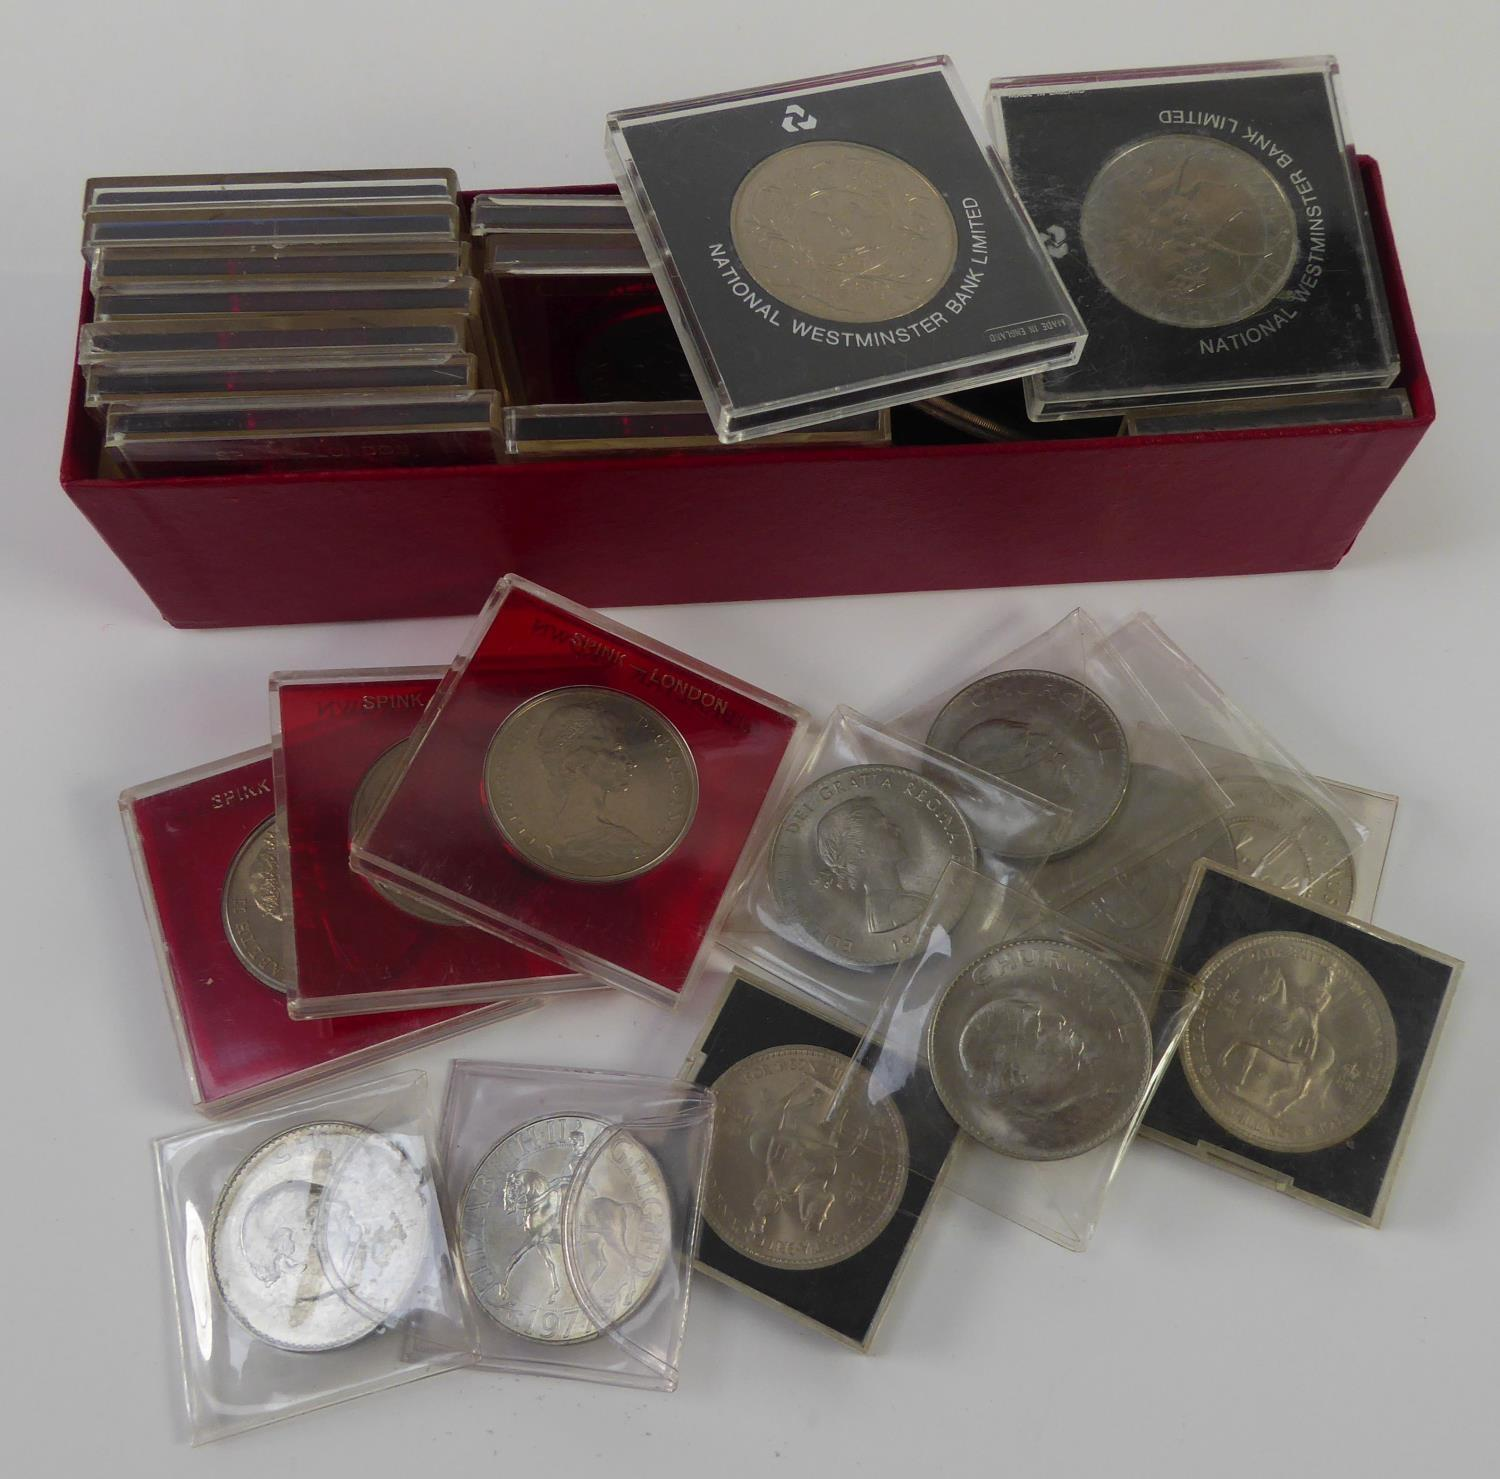 THIRTEEN QUEEN ELIZABETH II UNCIRCULATED GIBRALTAR CROWN COINS, each in Spink, London hard plastic